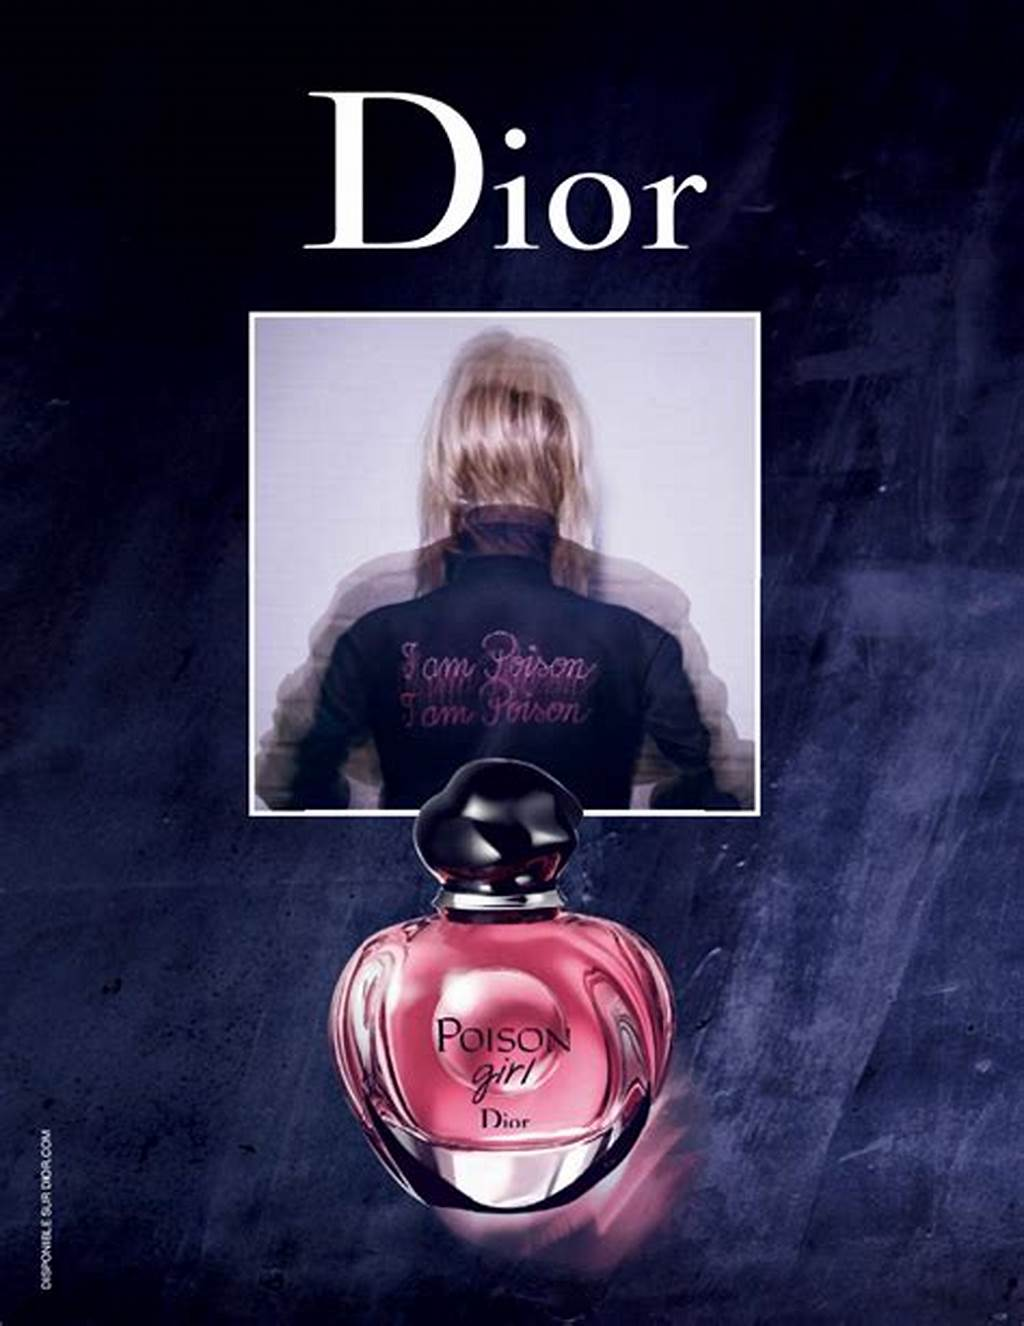 #Dior #Poison #Girl #2016 #Fragrance